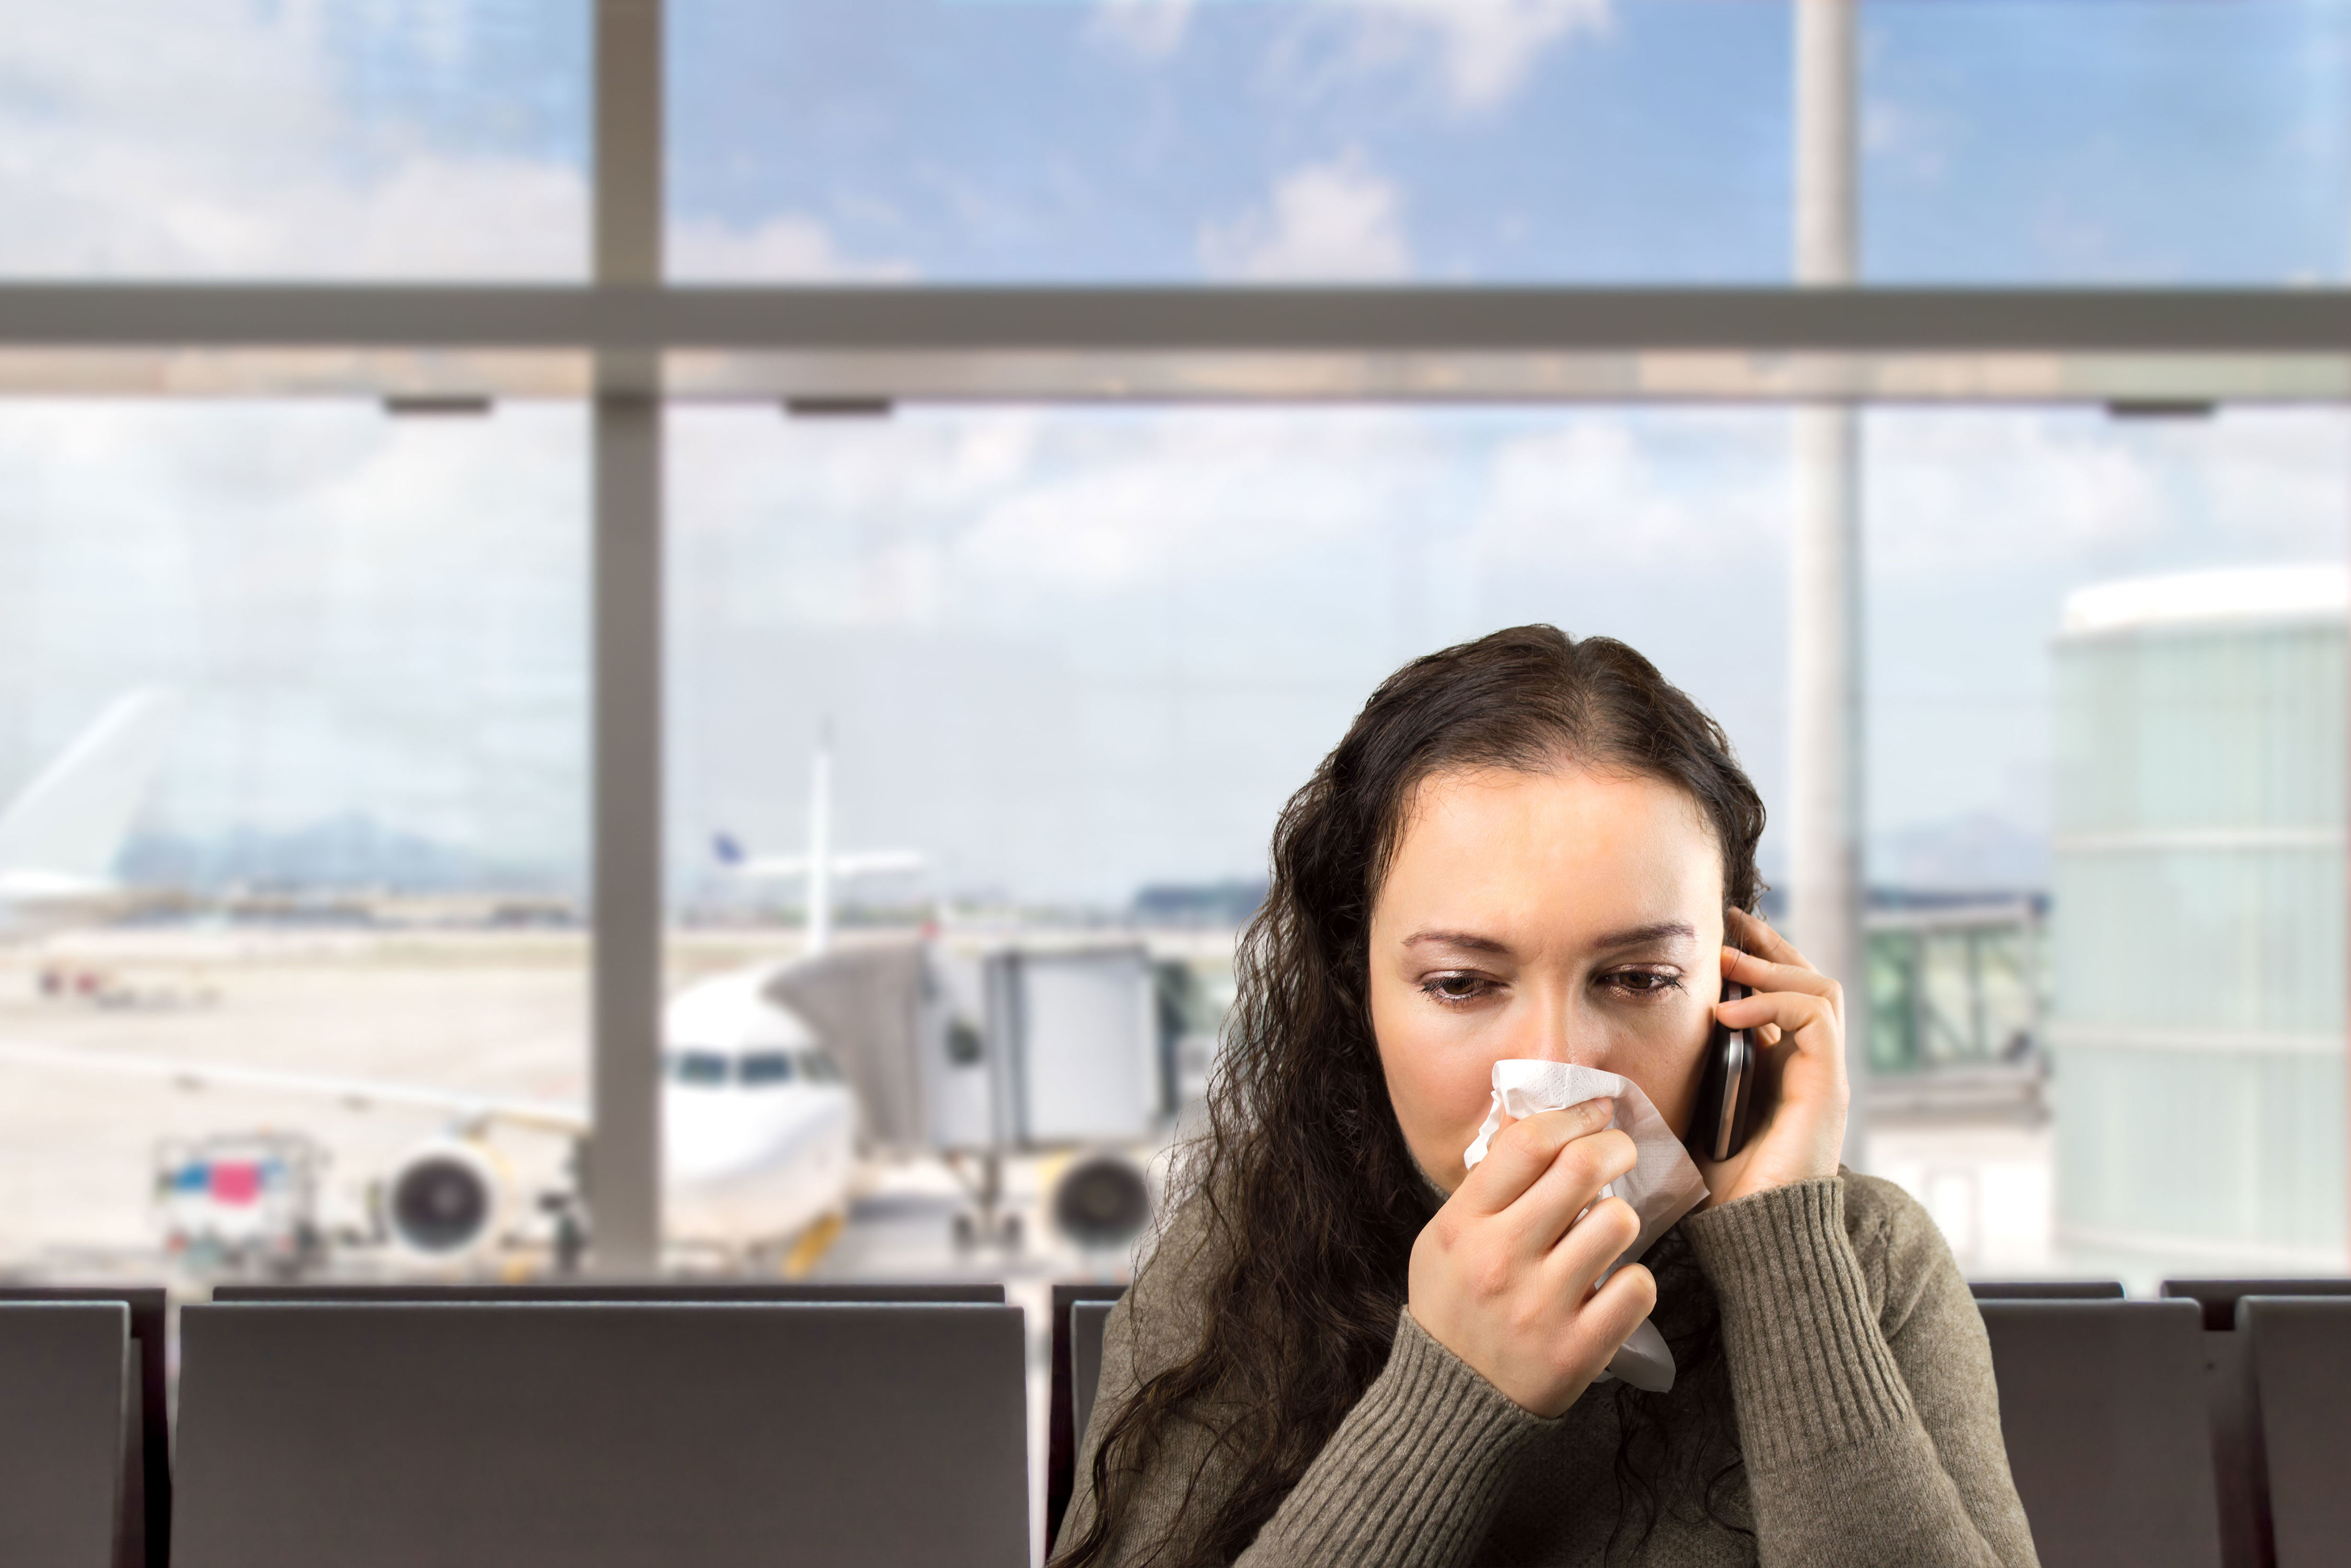 WATCH: Ever Wonder Why You Always Get Sick When Flying?